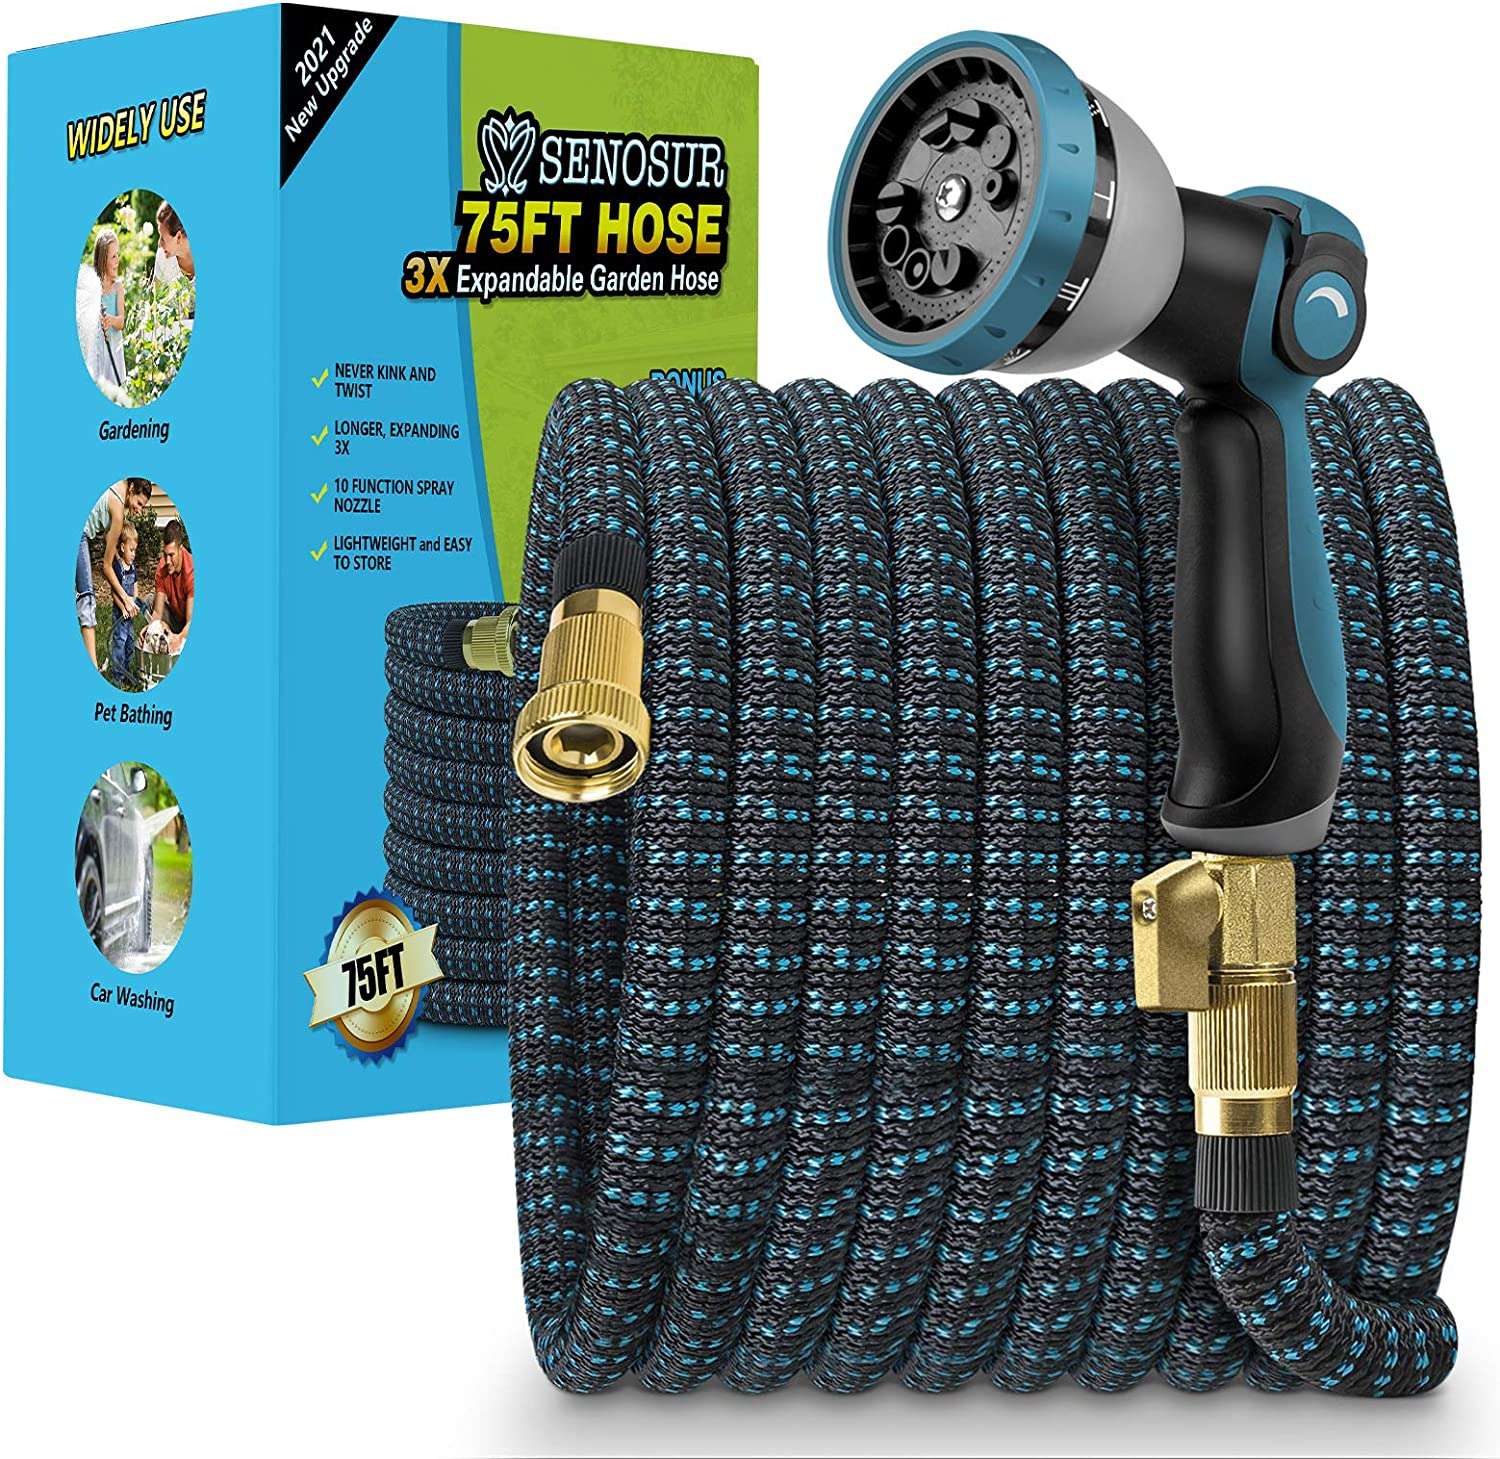 SENOSUR Expandable Garden Hose 75FT, Flexible Water Hose with 10 Function Nozzle, Leakproof Lightweight Expanding Durable Hose, Collapsible Outdoor Hose for Lawn Car Pet Washing